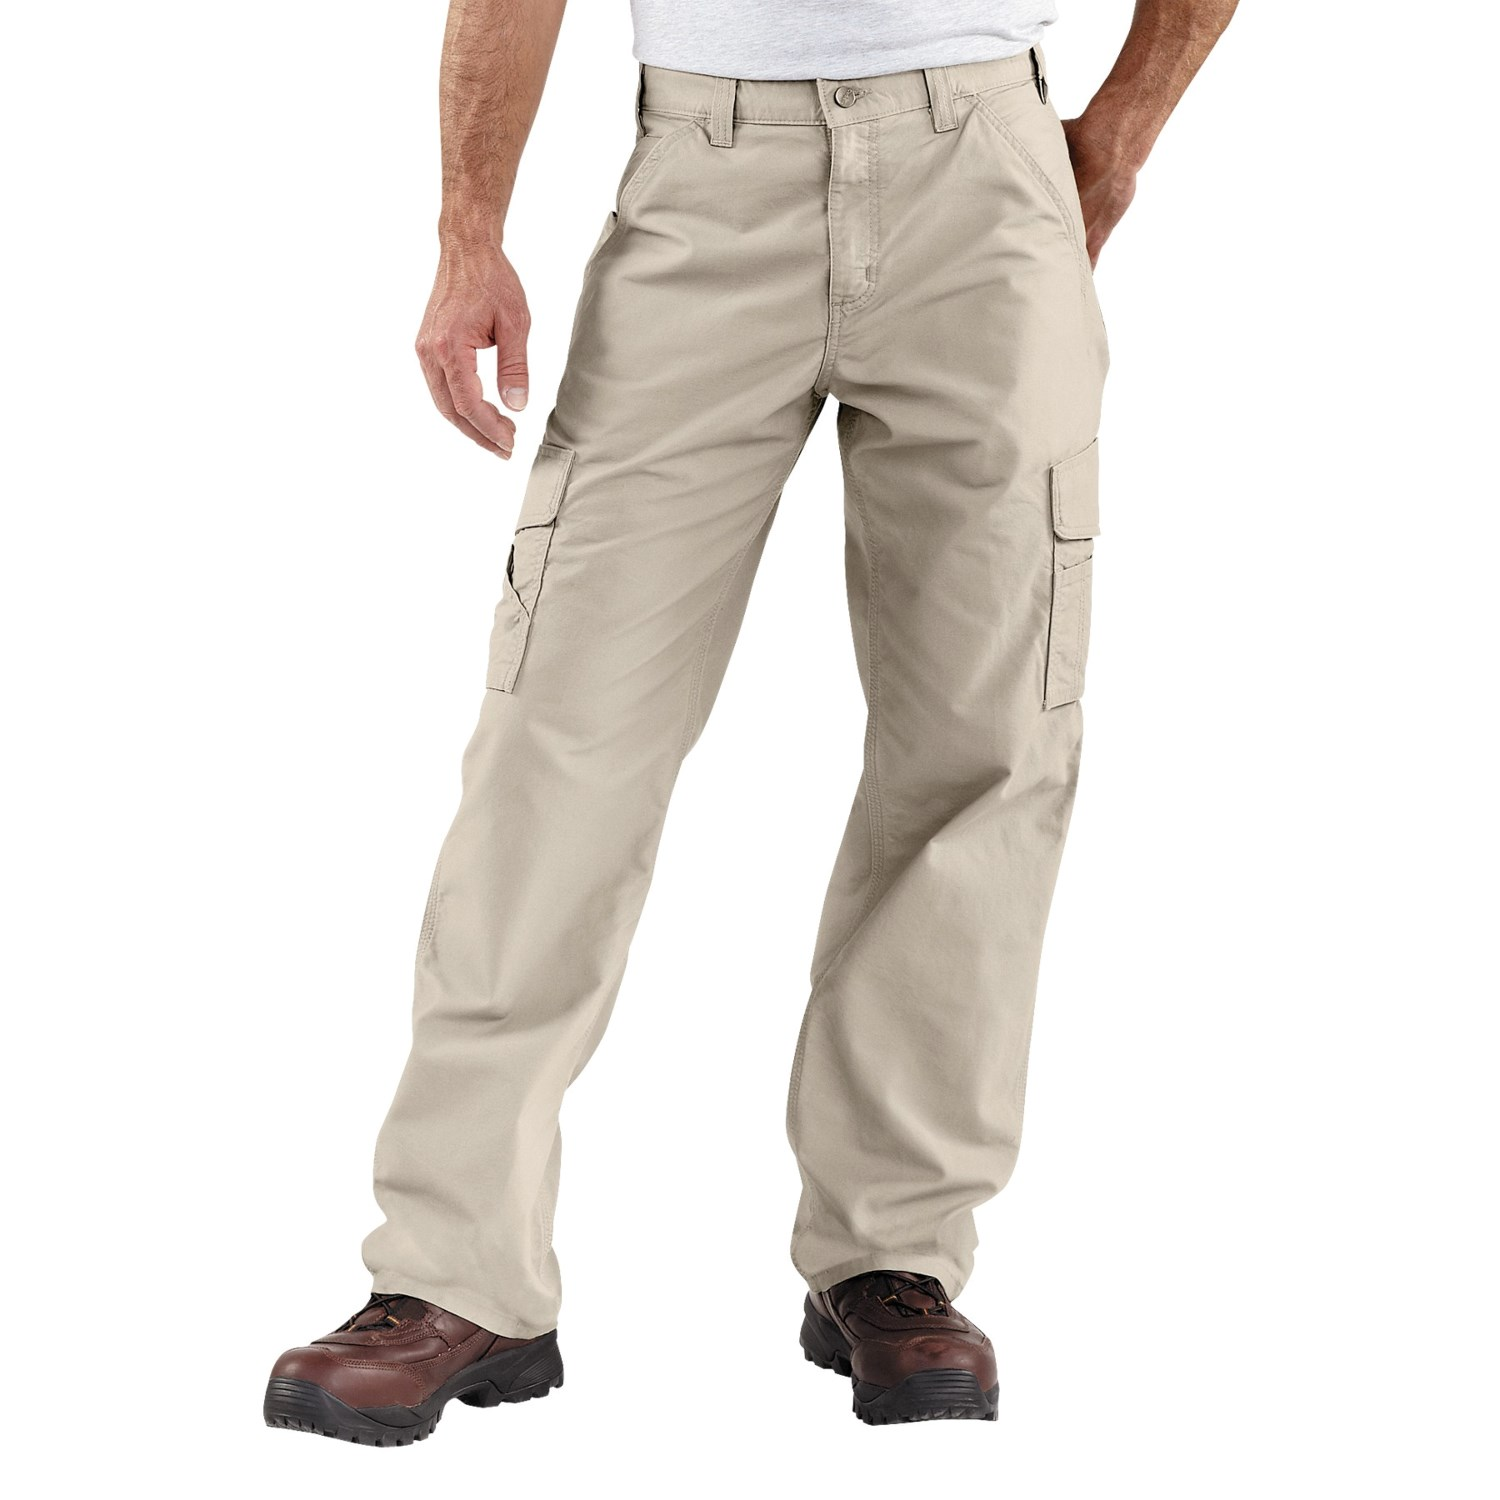 Dickies' selection of cargo pants for men includes a variety of styles & colors, all with our famous rugged construction. Shop our collection today! Williamson-Dickie Mfg. Co. Men All Men Pants Relaxed Fit Straight Leg Cargo Work Pants Item #WP $ View all (4) Industrial Relaxed Fit Cargo Pants Item # $ - $ View all (3).